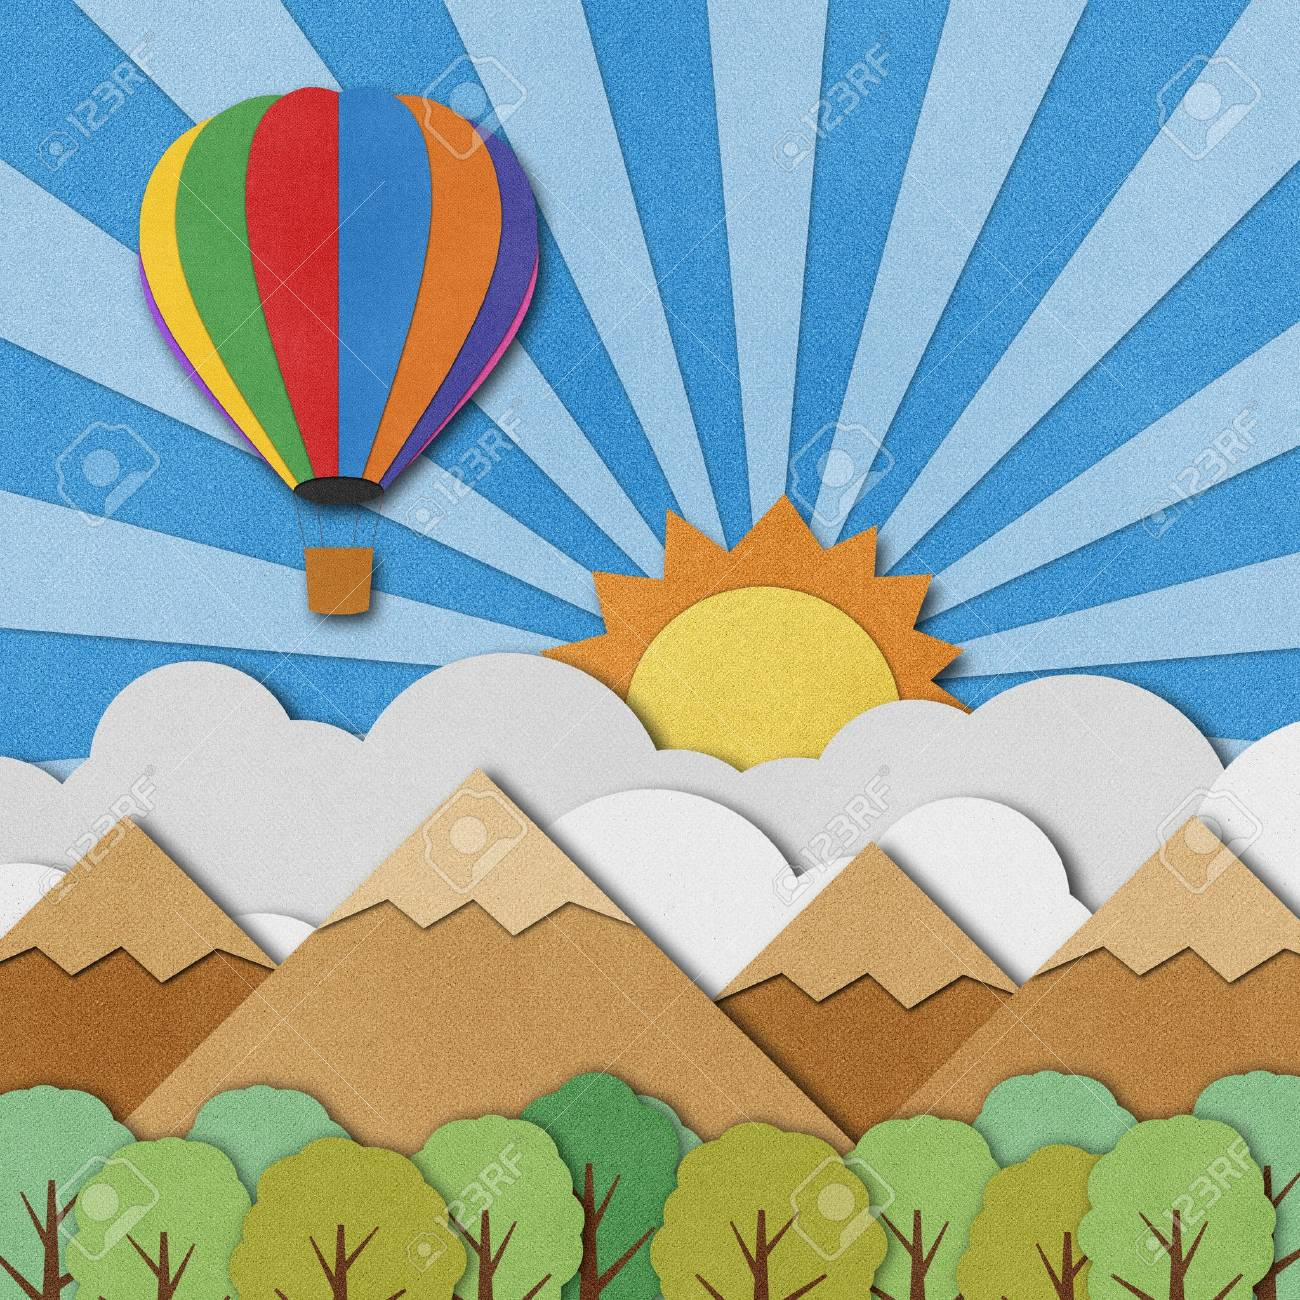 Balloon made from recycled paper background. Stock Photo - 15862235